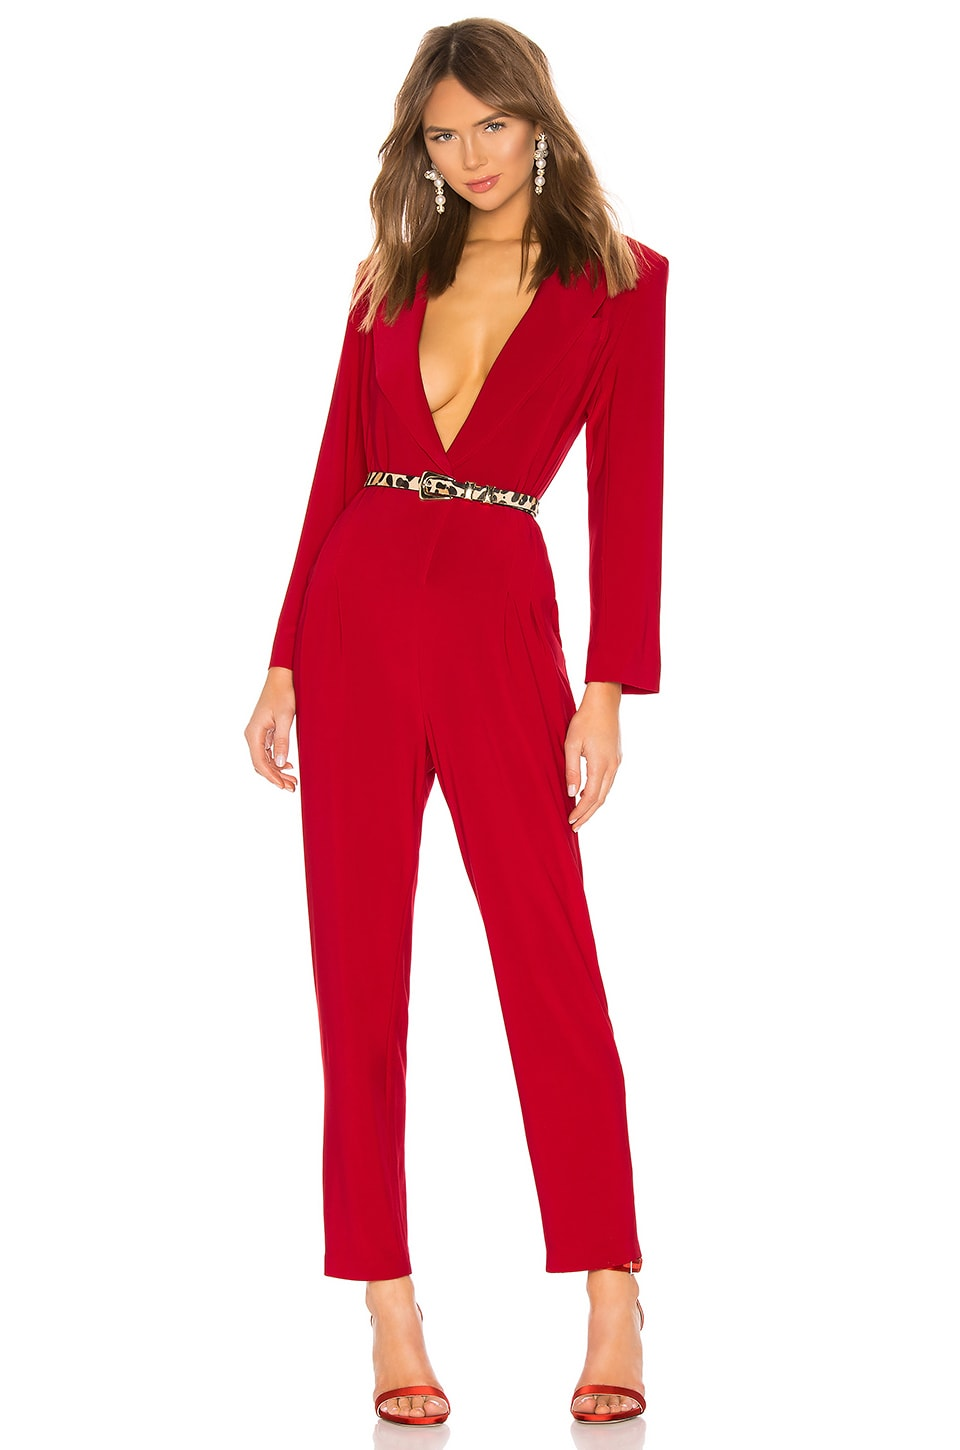 Norma Kamali X REVOLVE Single Breasted Jumpsuit in Red